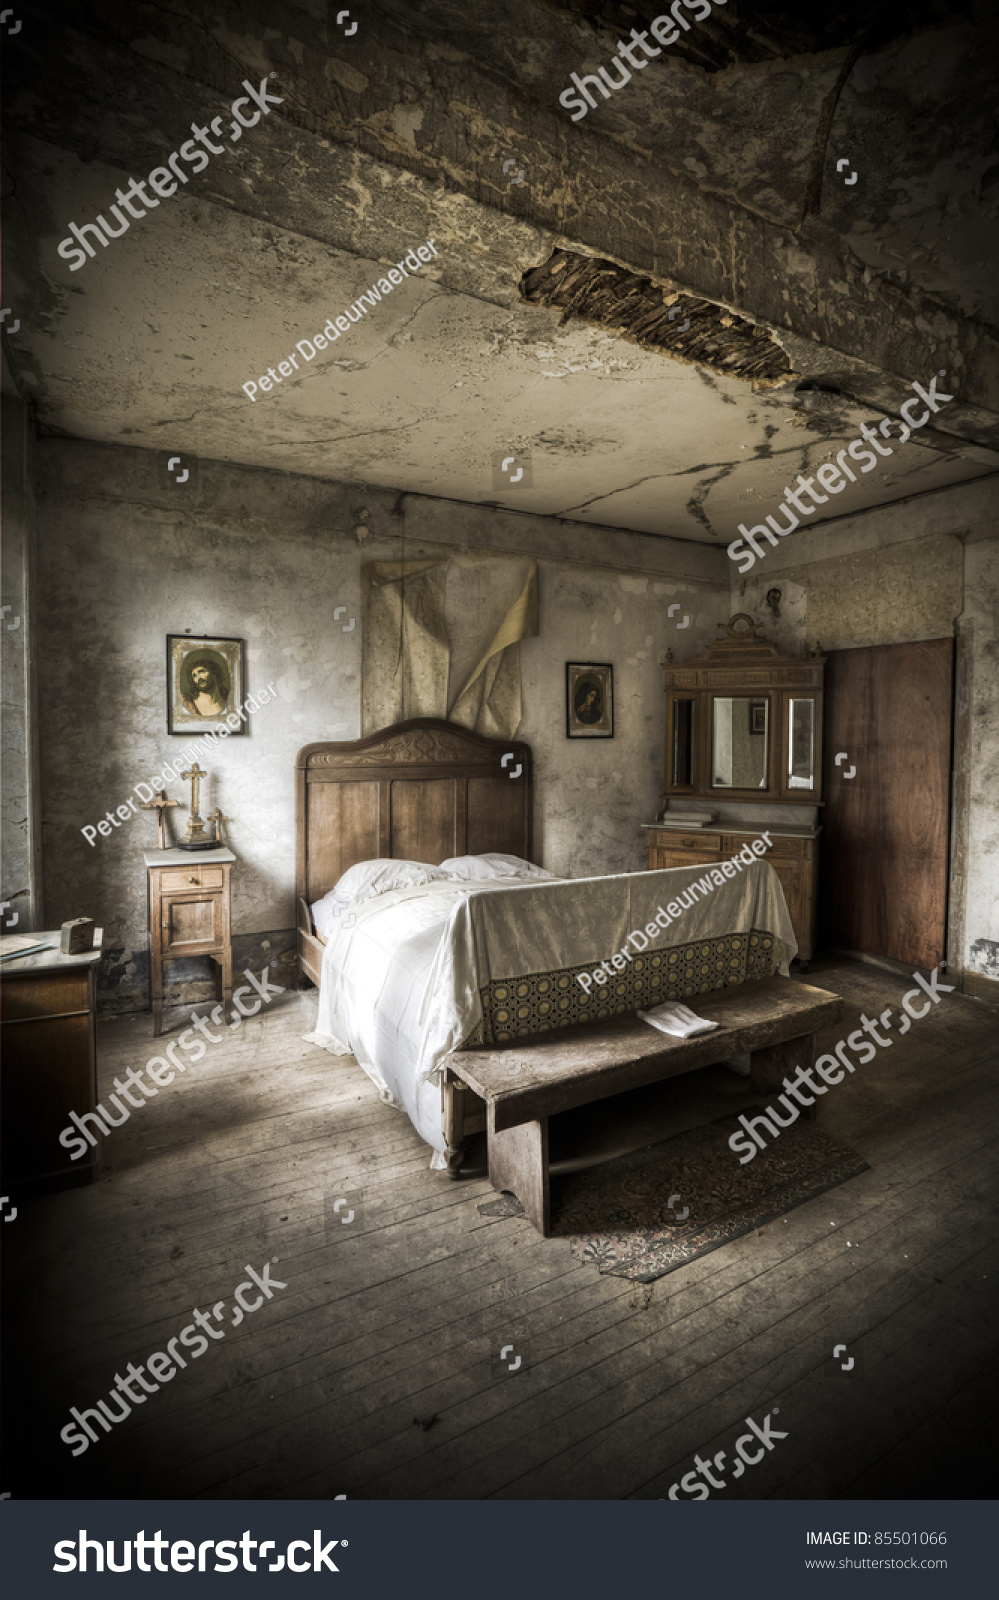 Image Gallery Scary Bedroom